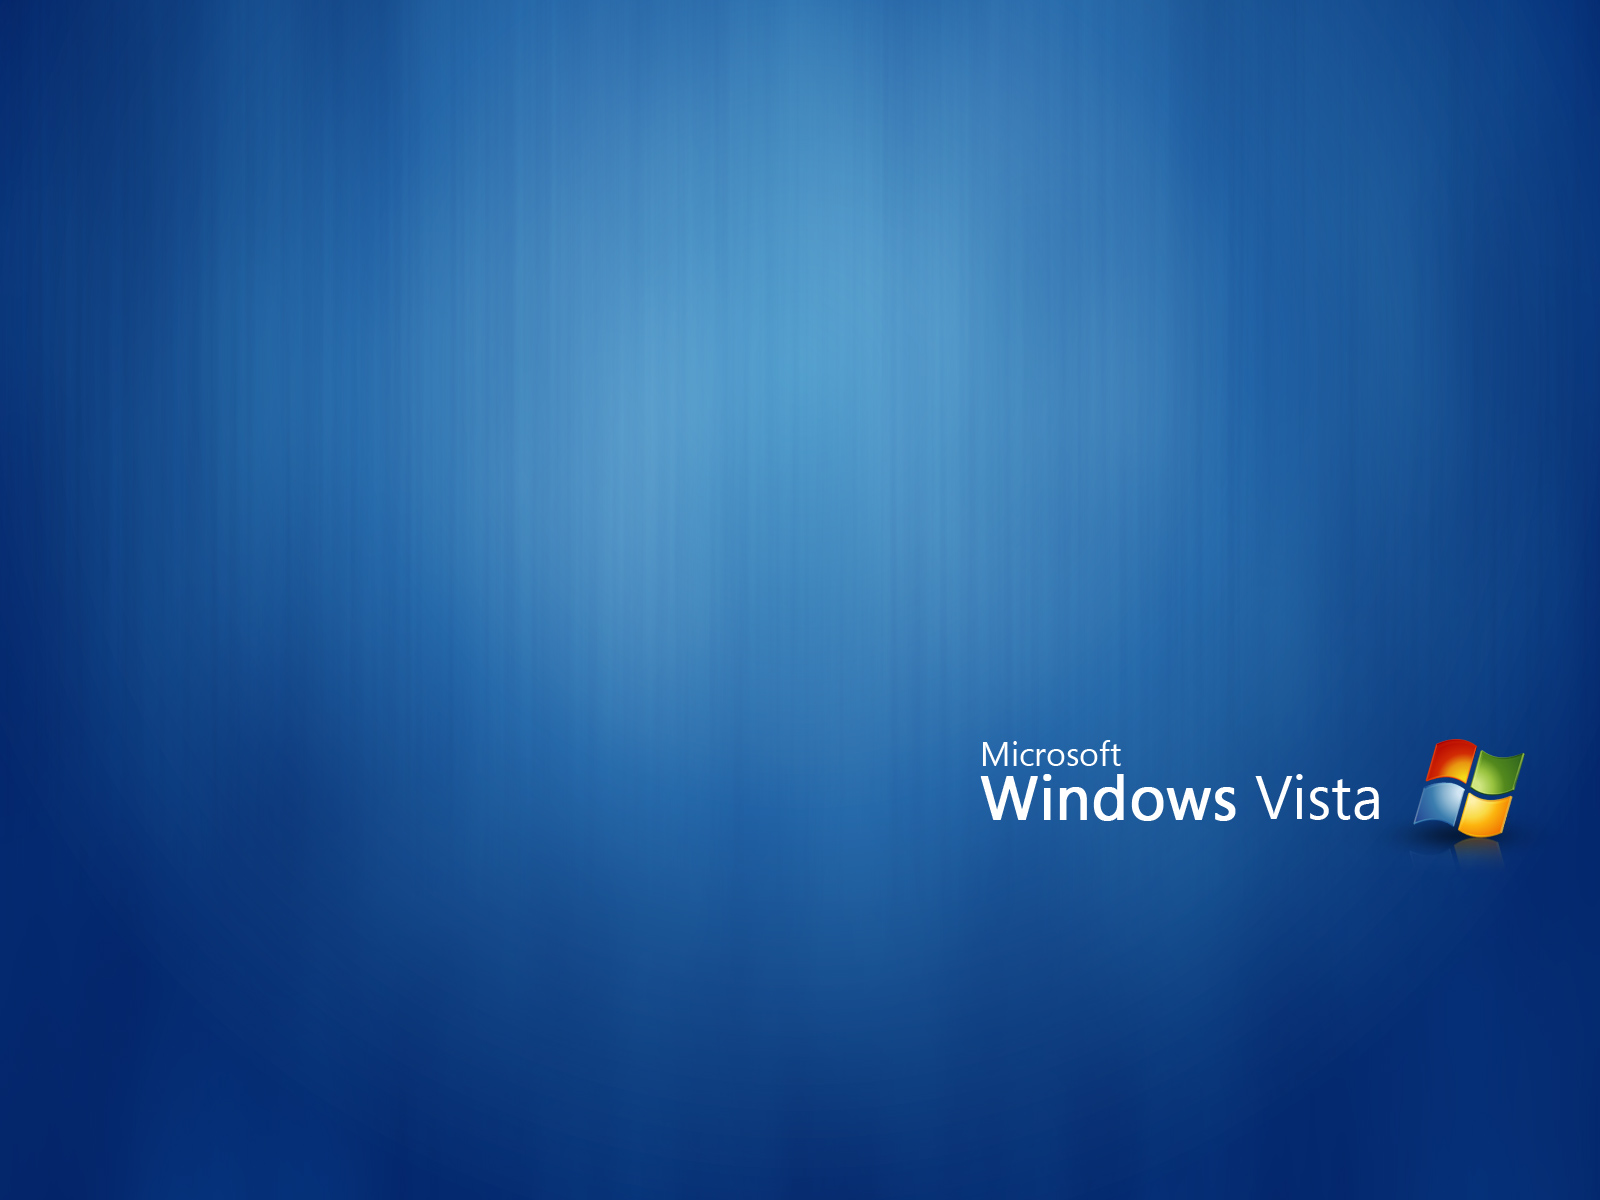 download wallpapers: wallpaper windows vista